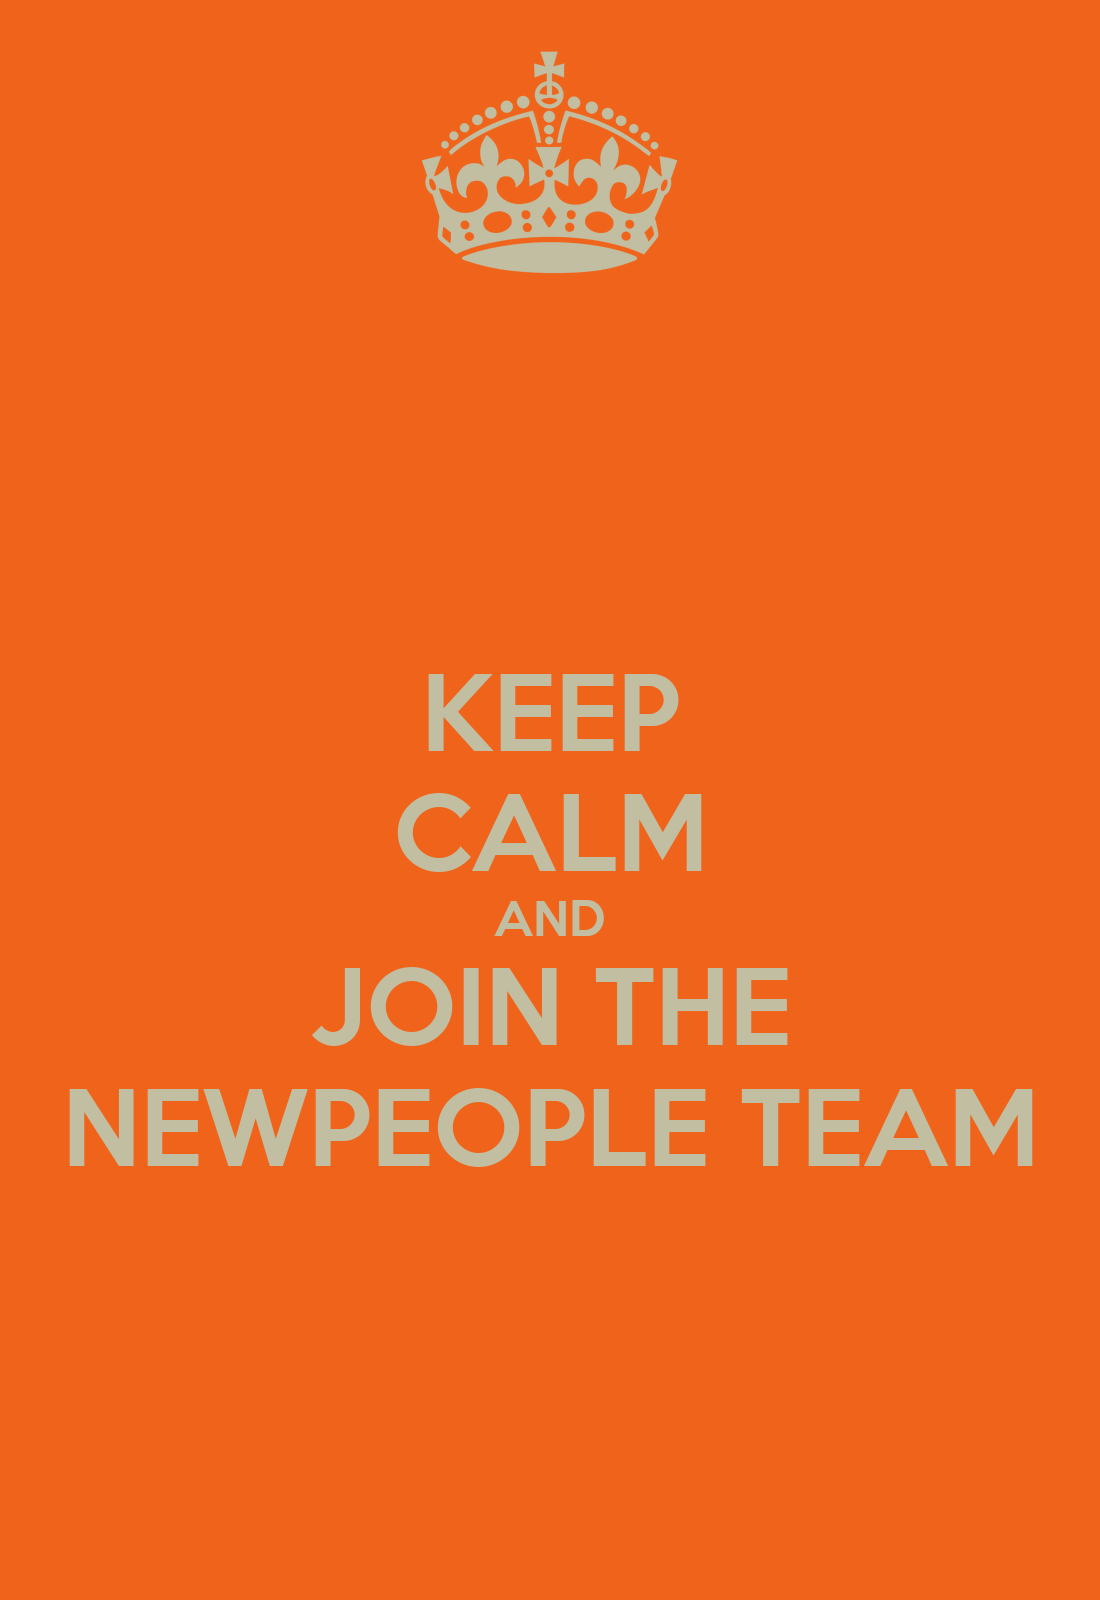 KEEP CALM AND JOIN THE NEWPEOPLE TEAM Poster ...